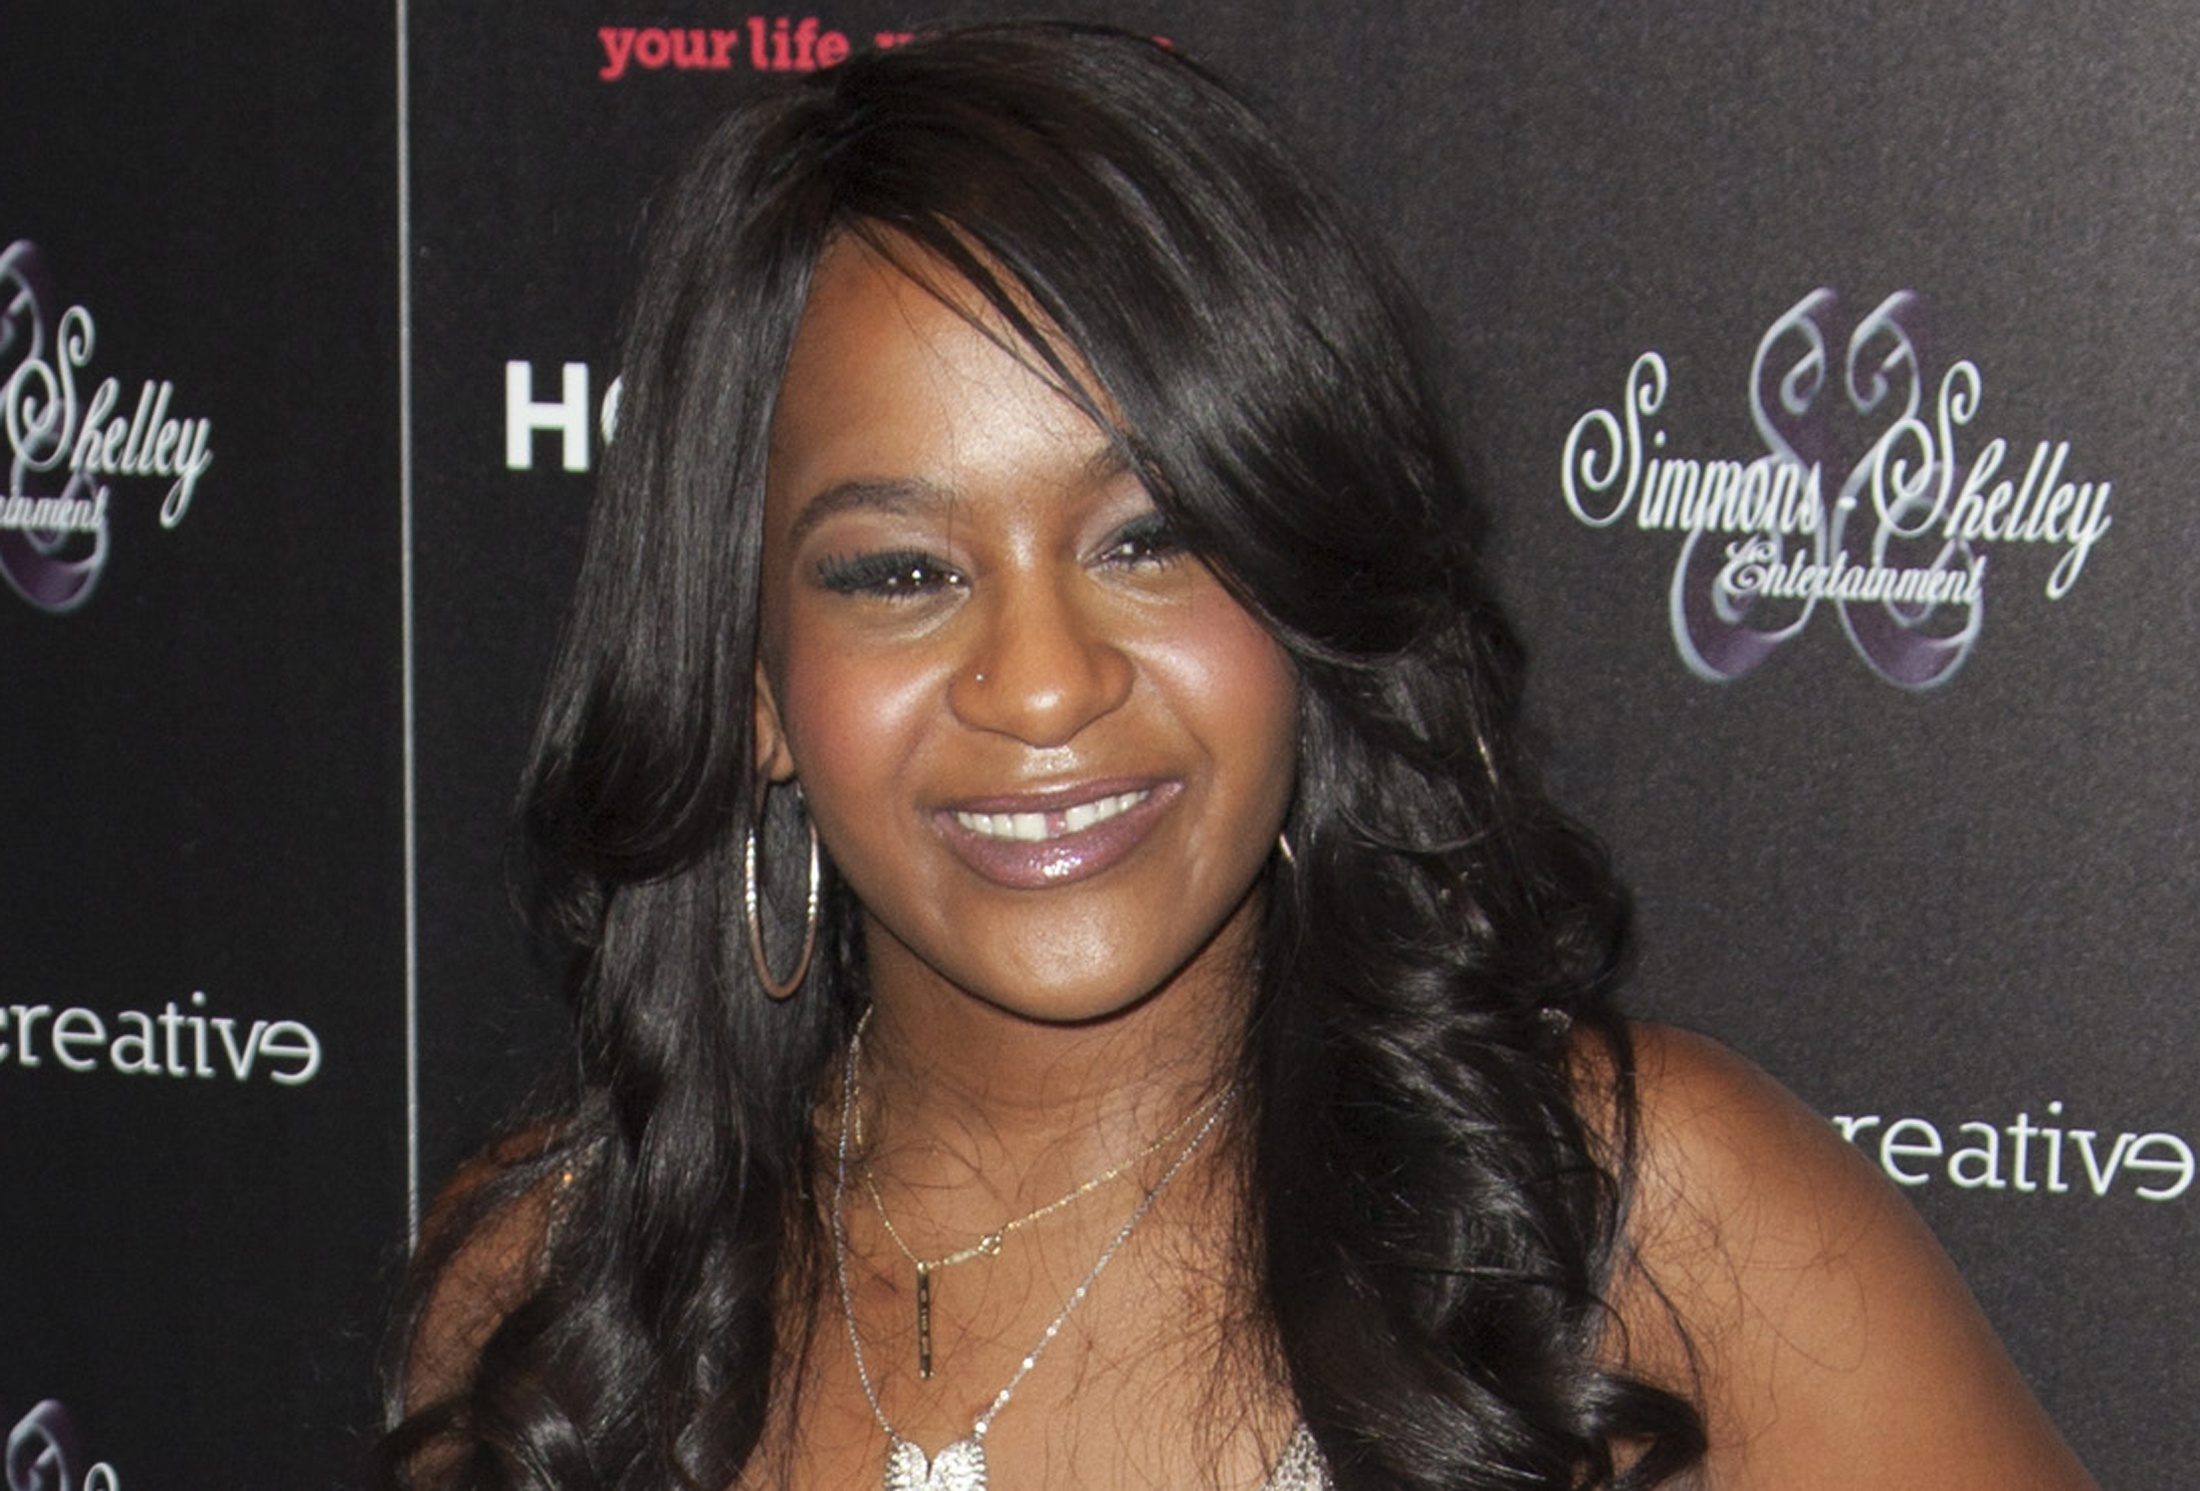 Houston Family Gives Bobbi Kristina Brown Update On Her 22nd